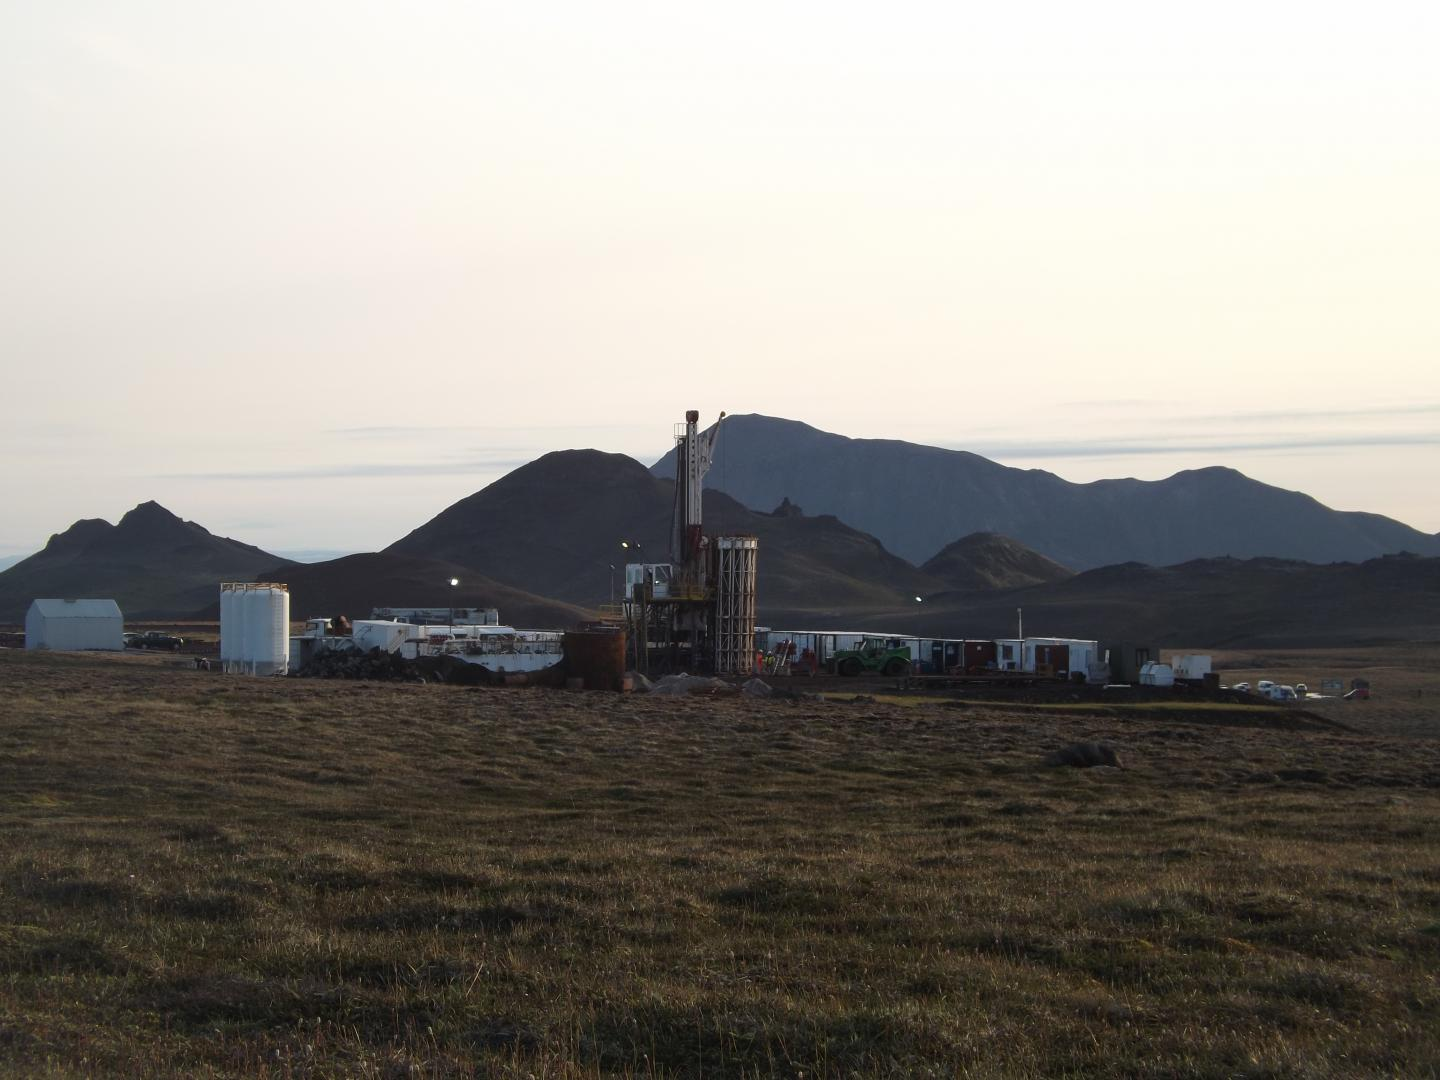 Iceland Deep Drilling Project-1 drill rig